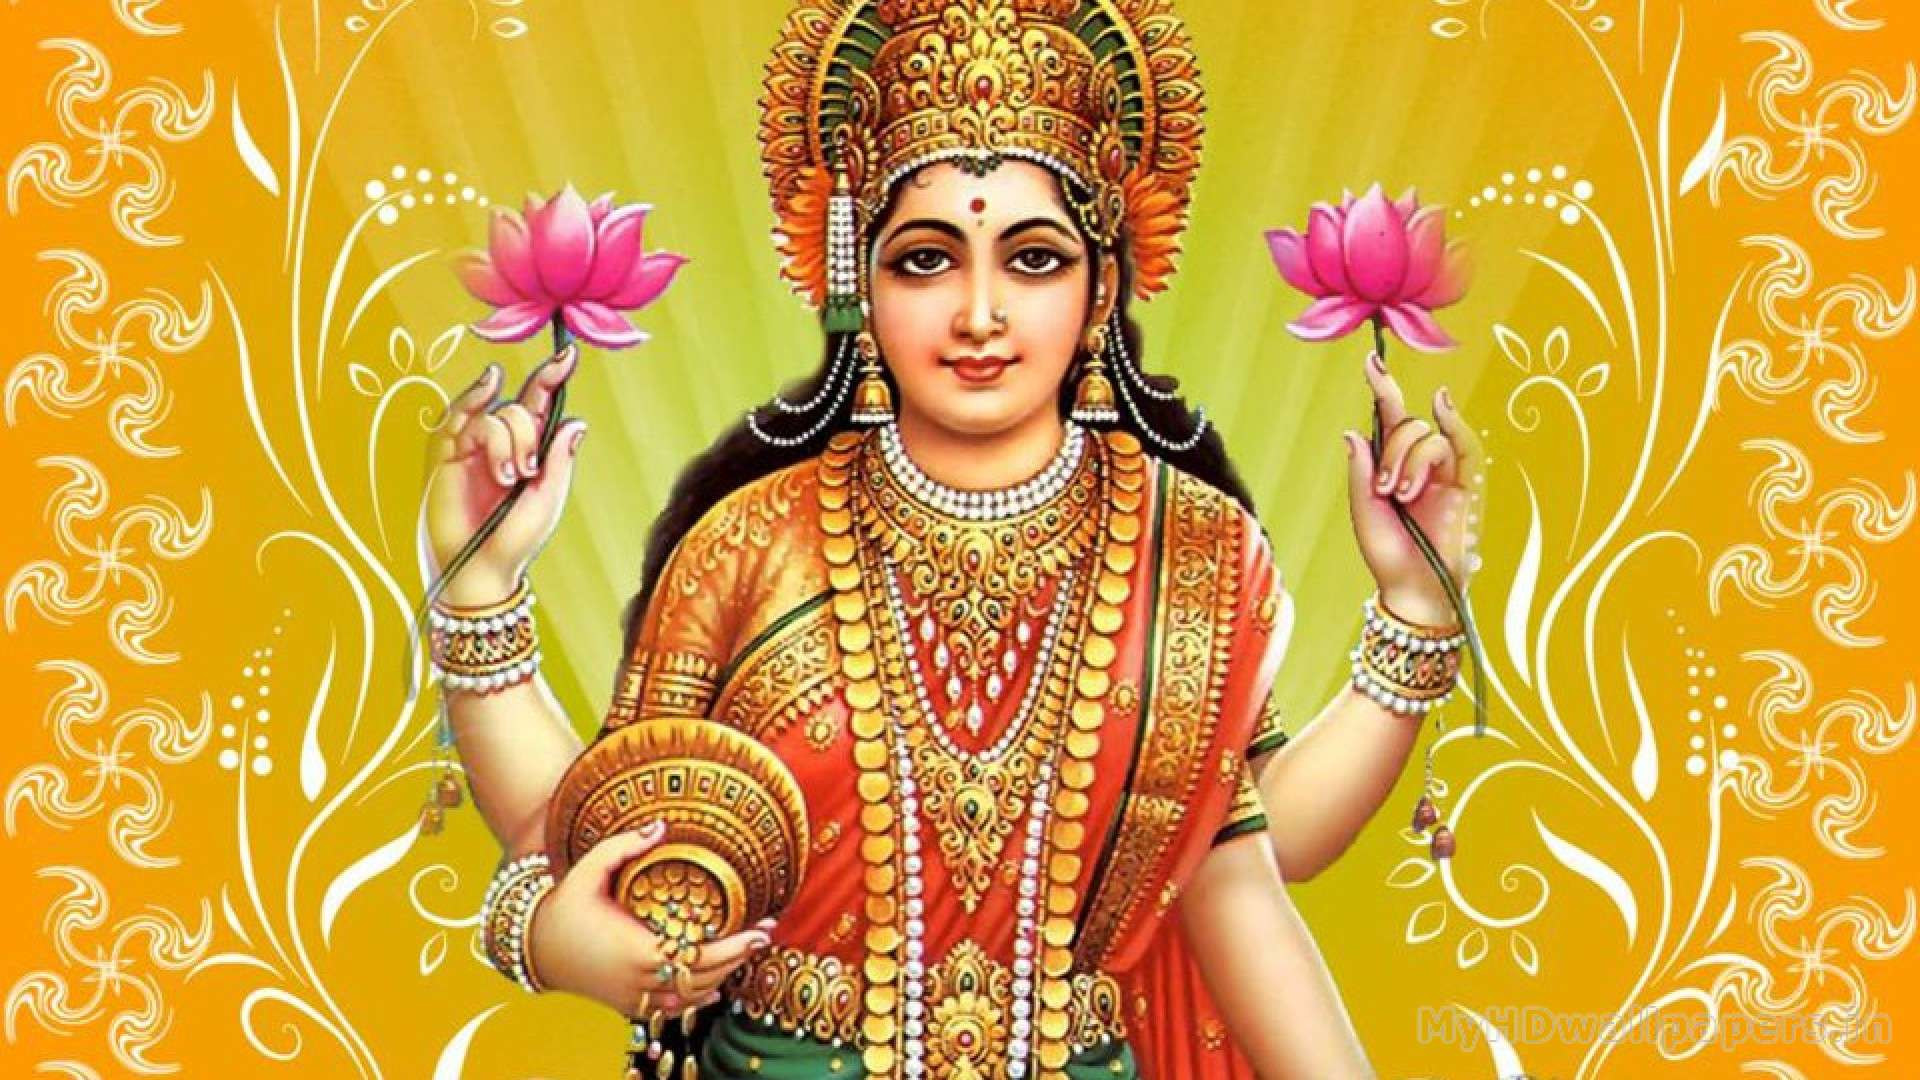 Indian God Images Wallpapers 45 Images